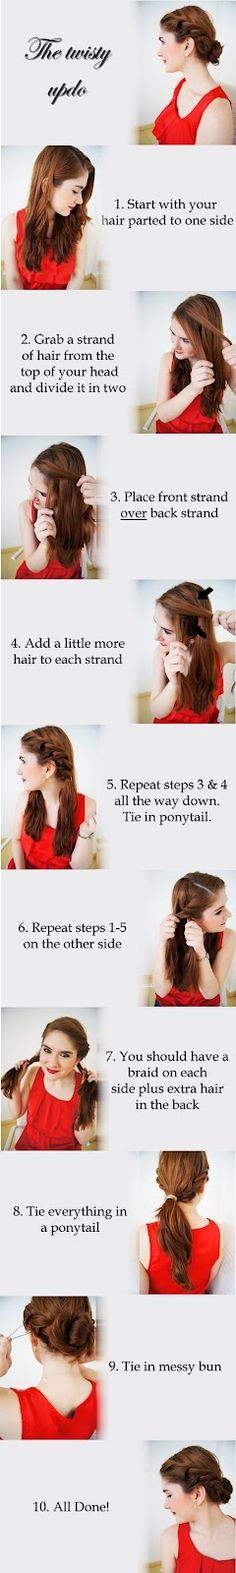 The Joy of Fashion: Hair Tutorial: The Twisty Updo